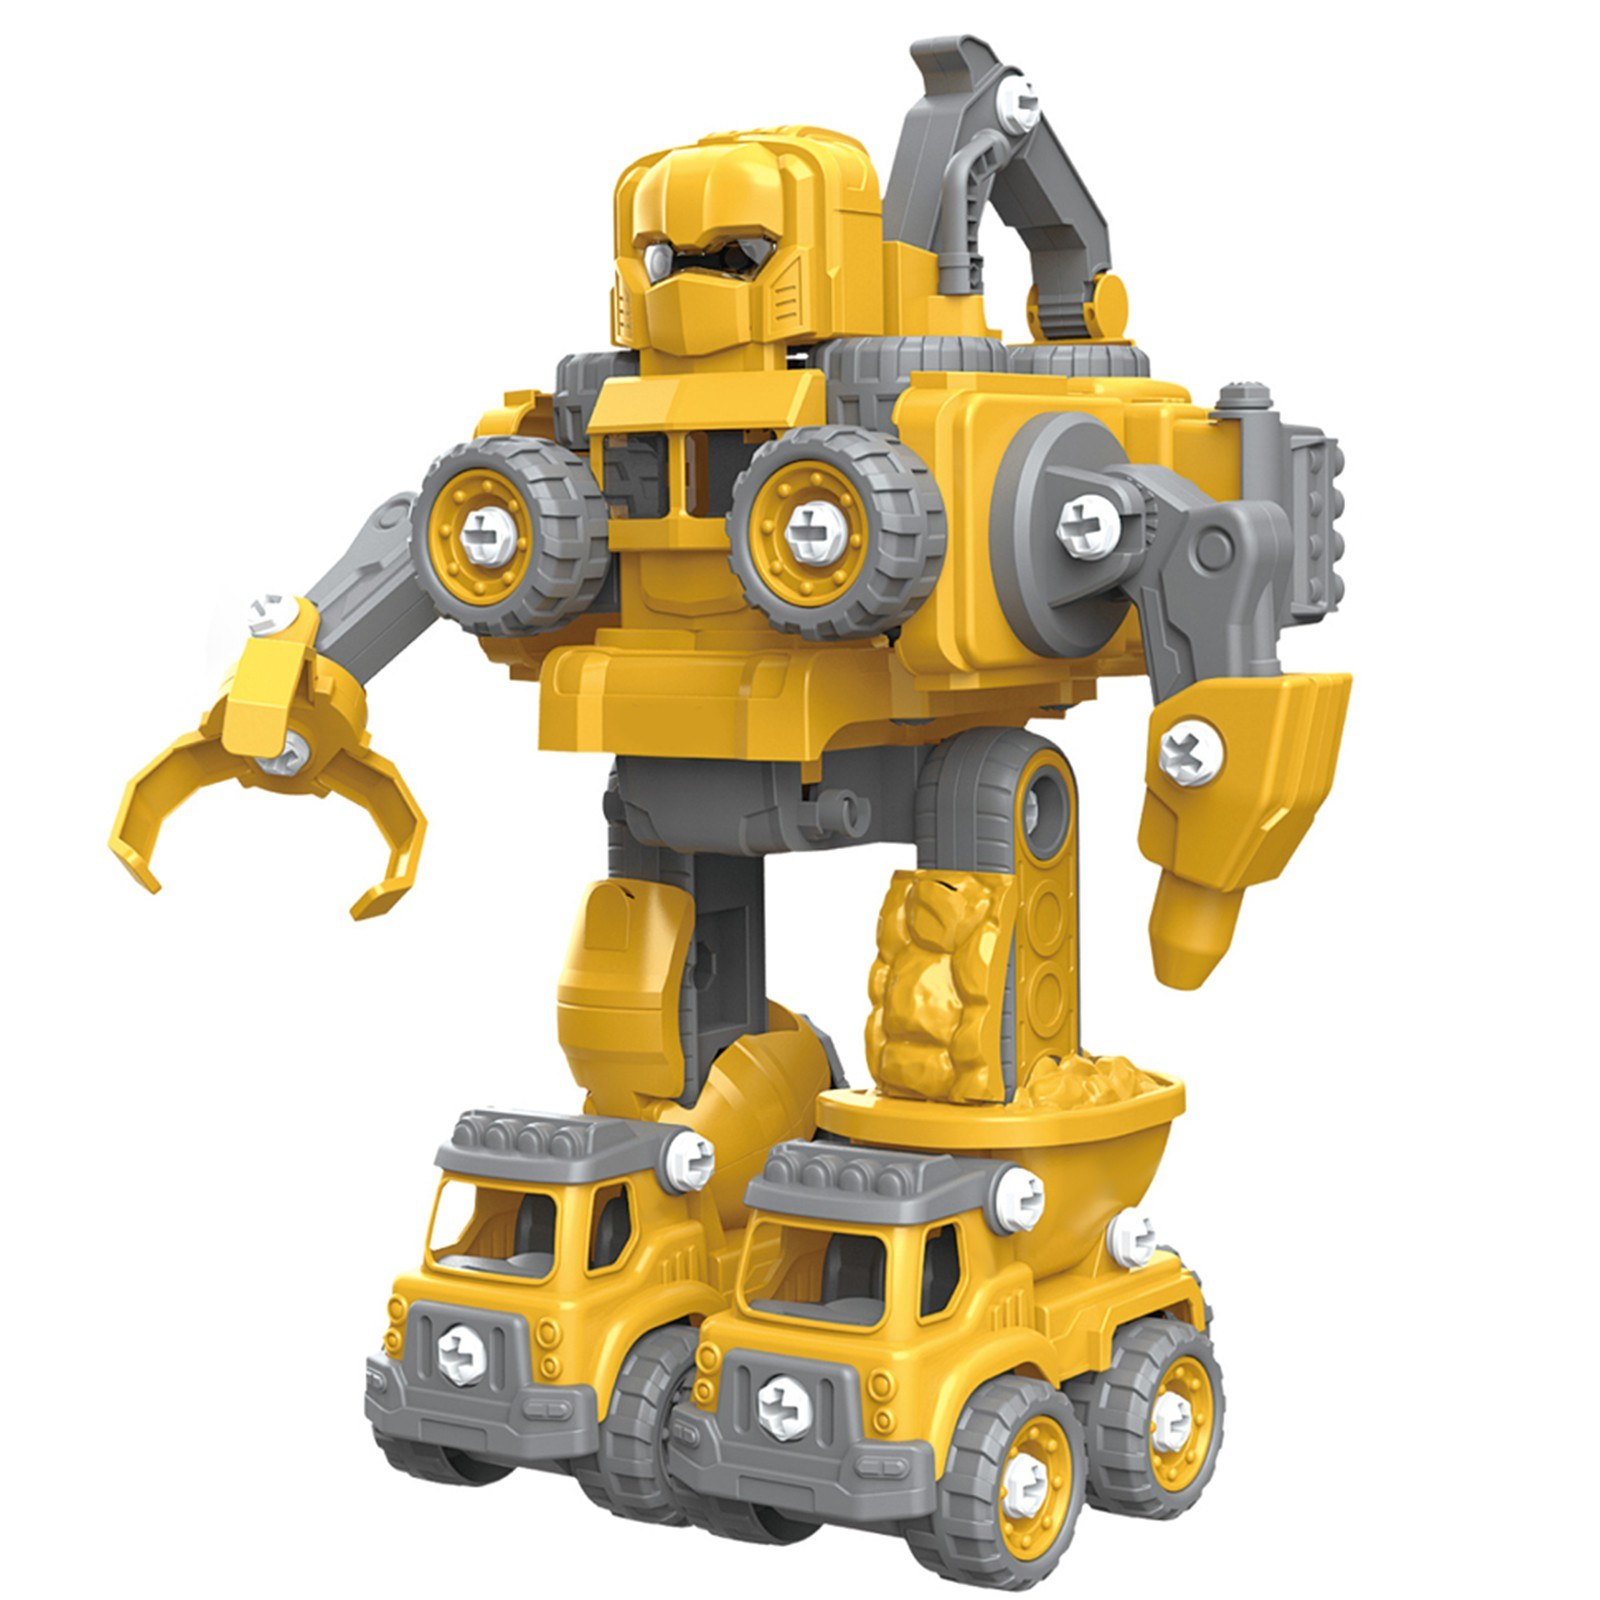 Cafago - 71% OFF Removable Robot Toys Engineering Vehicle 5 in 1 Construction Toys,free shipping+$26.42